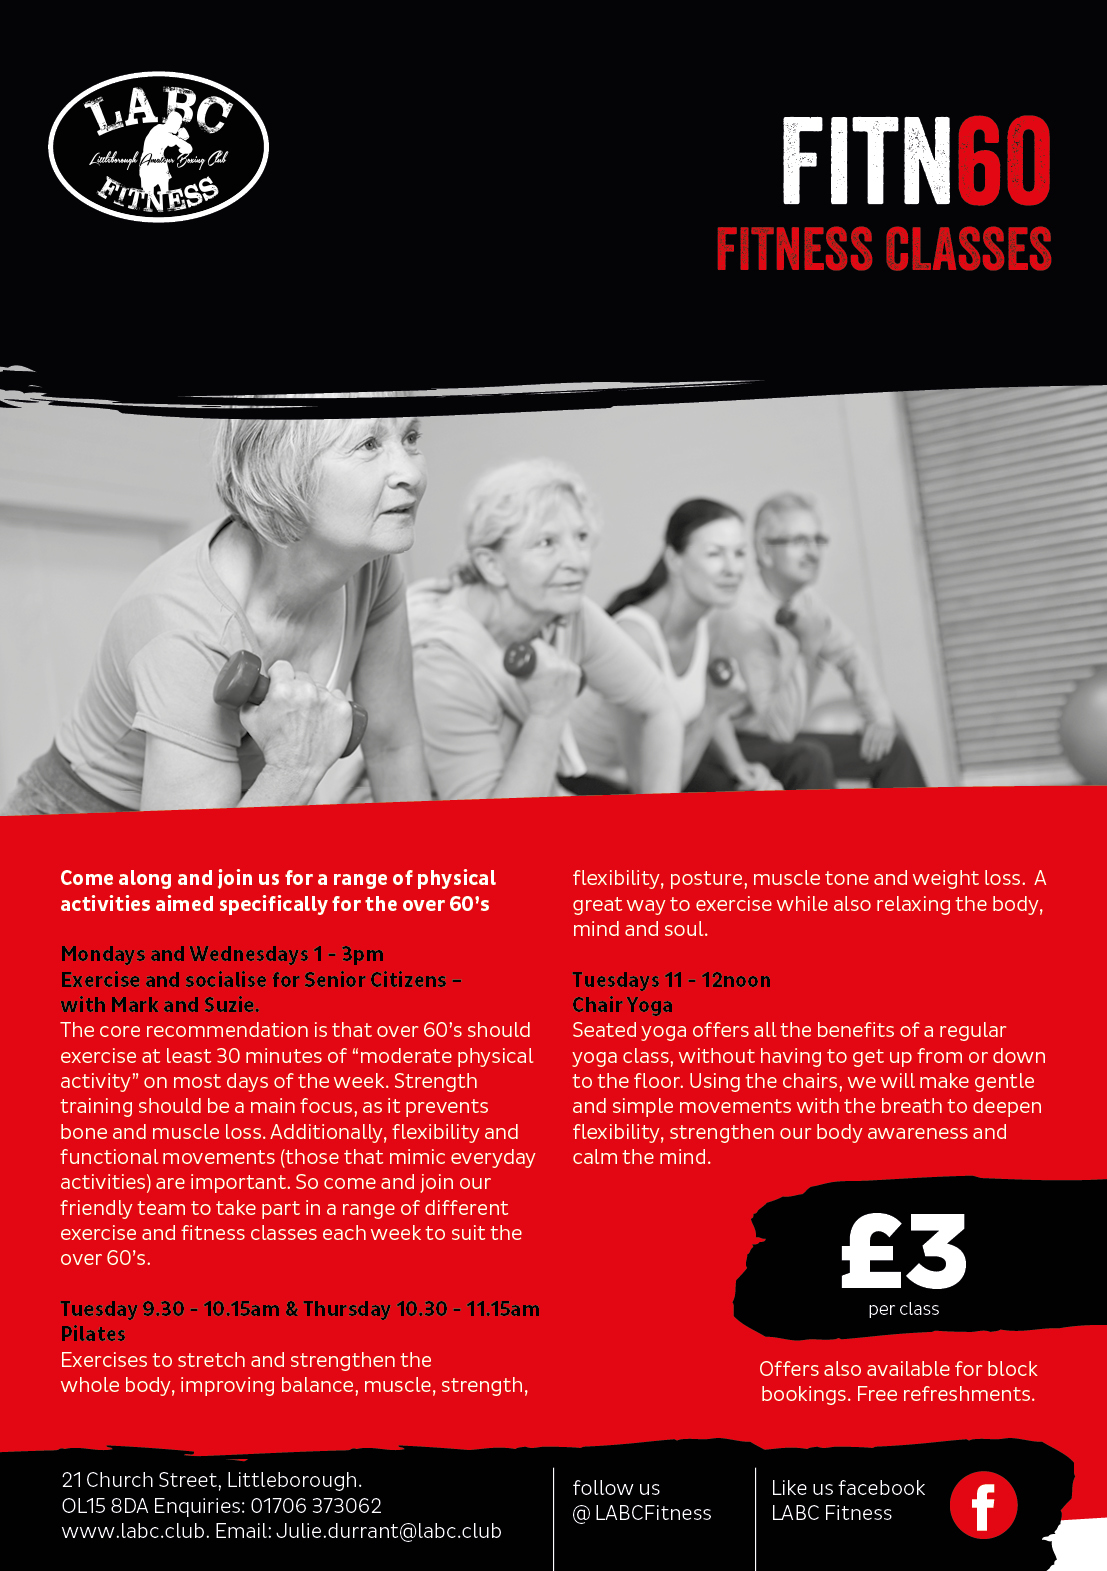 Littleborough Boxing & Fitness Club Fitn60